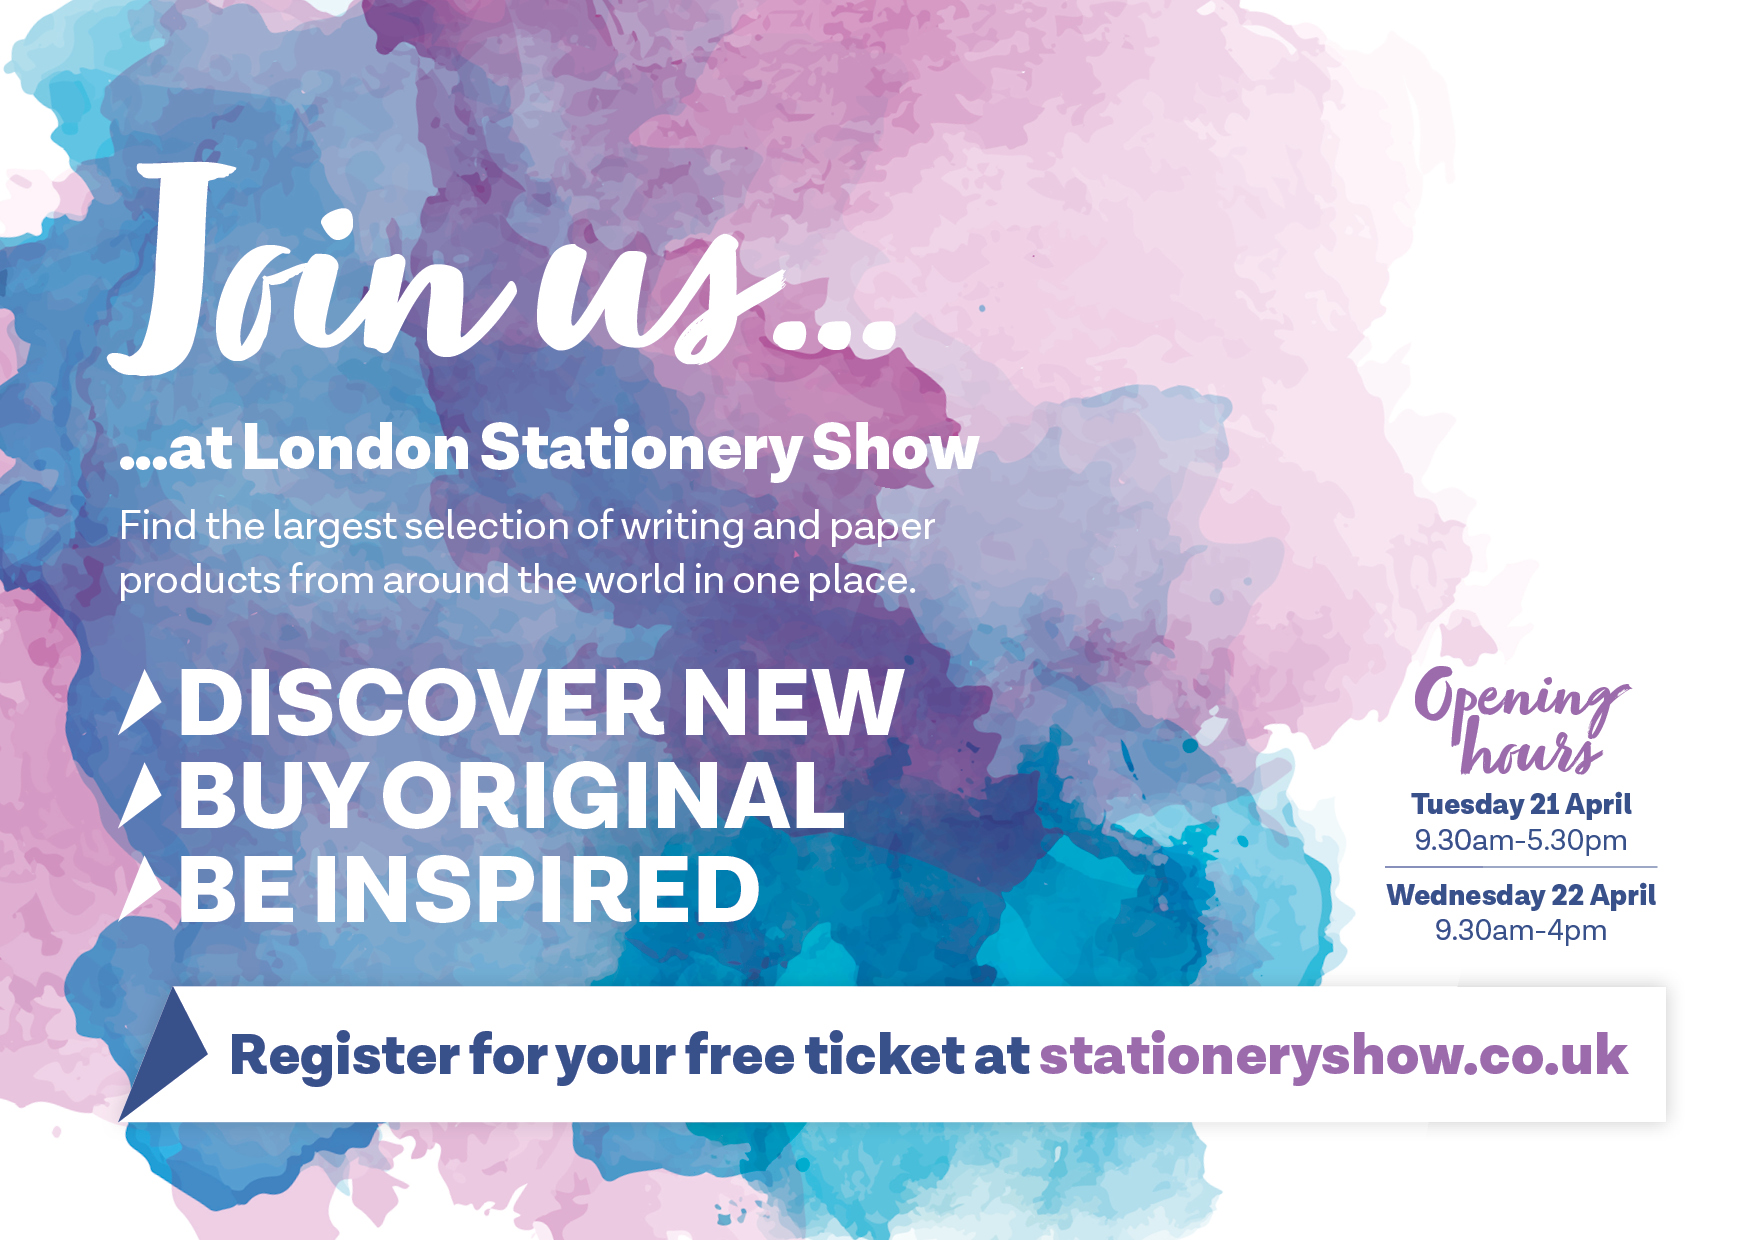 LONDON STATIONERY SHOW: POSTCARD